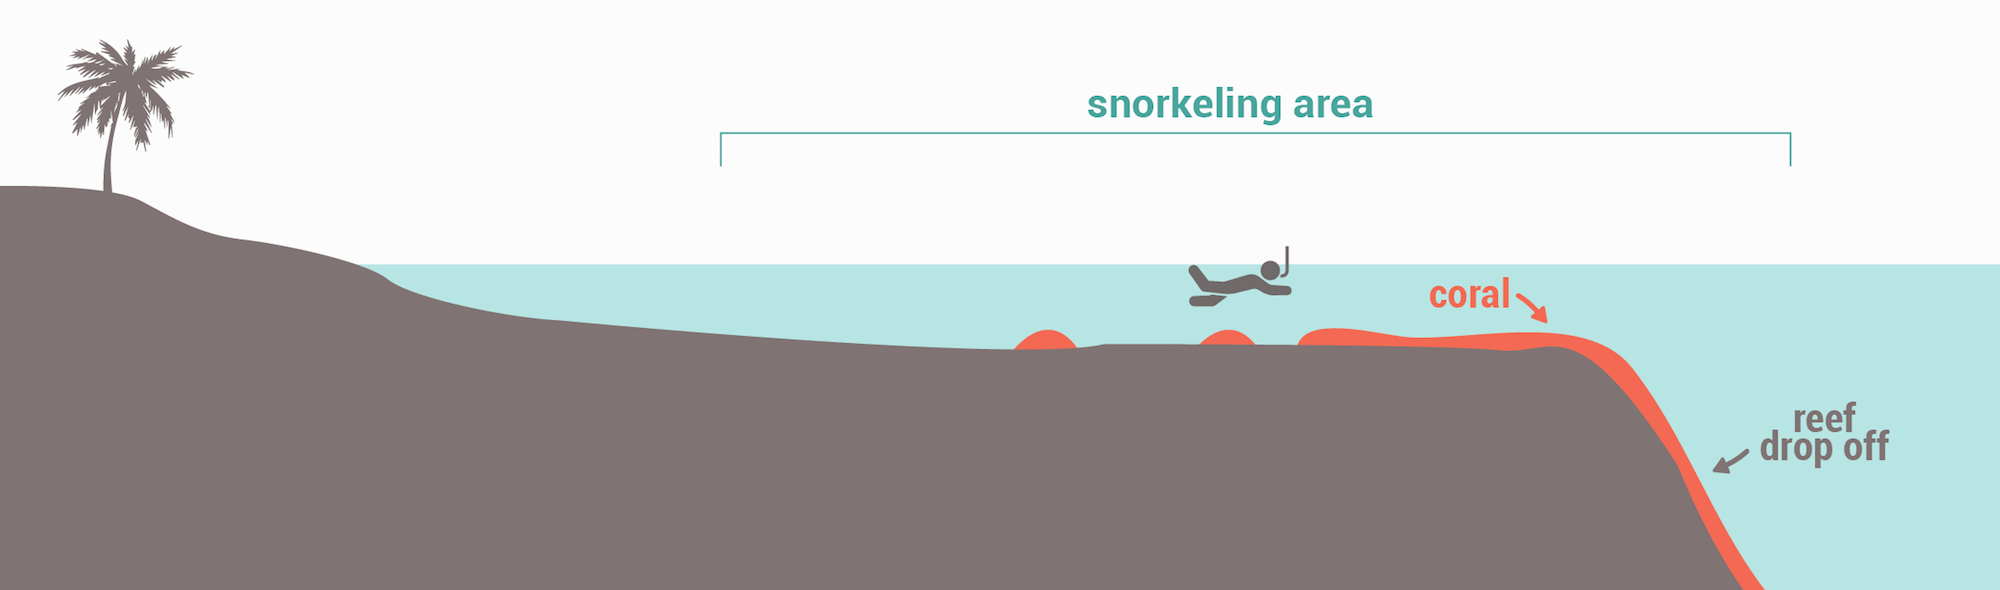 Snorkeling spots types - Reef drop off